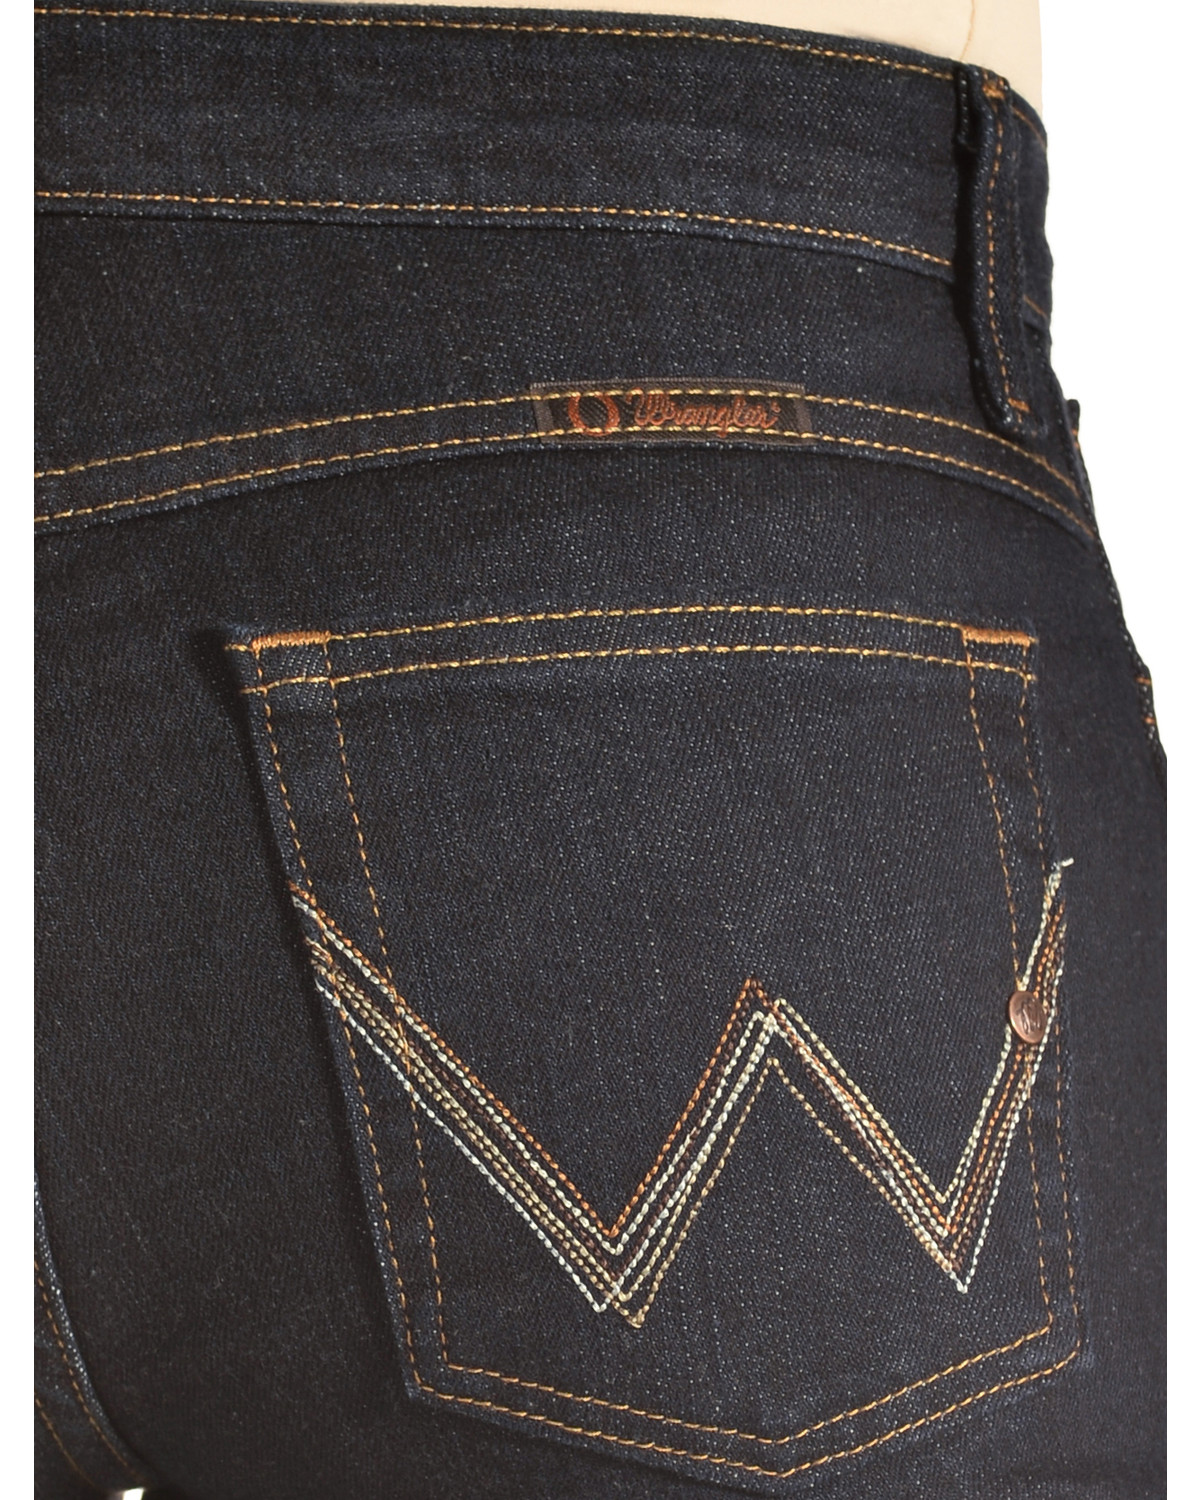 7a56aacda001d Wrangler Women s Dark Dynasty Ultimate Riding Q-Baby Jeans